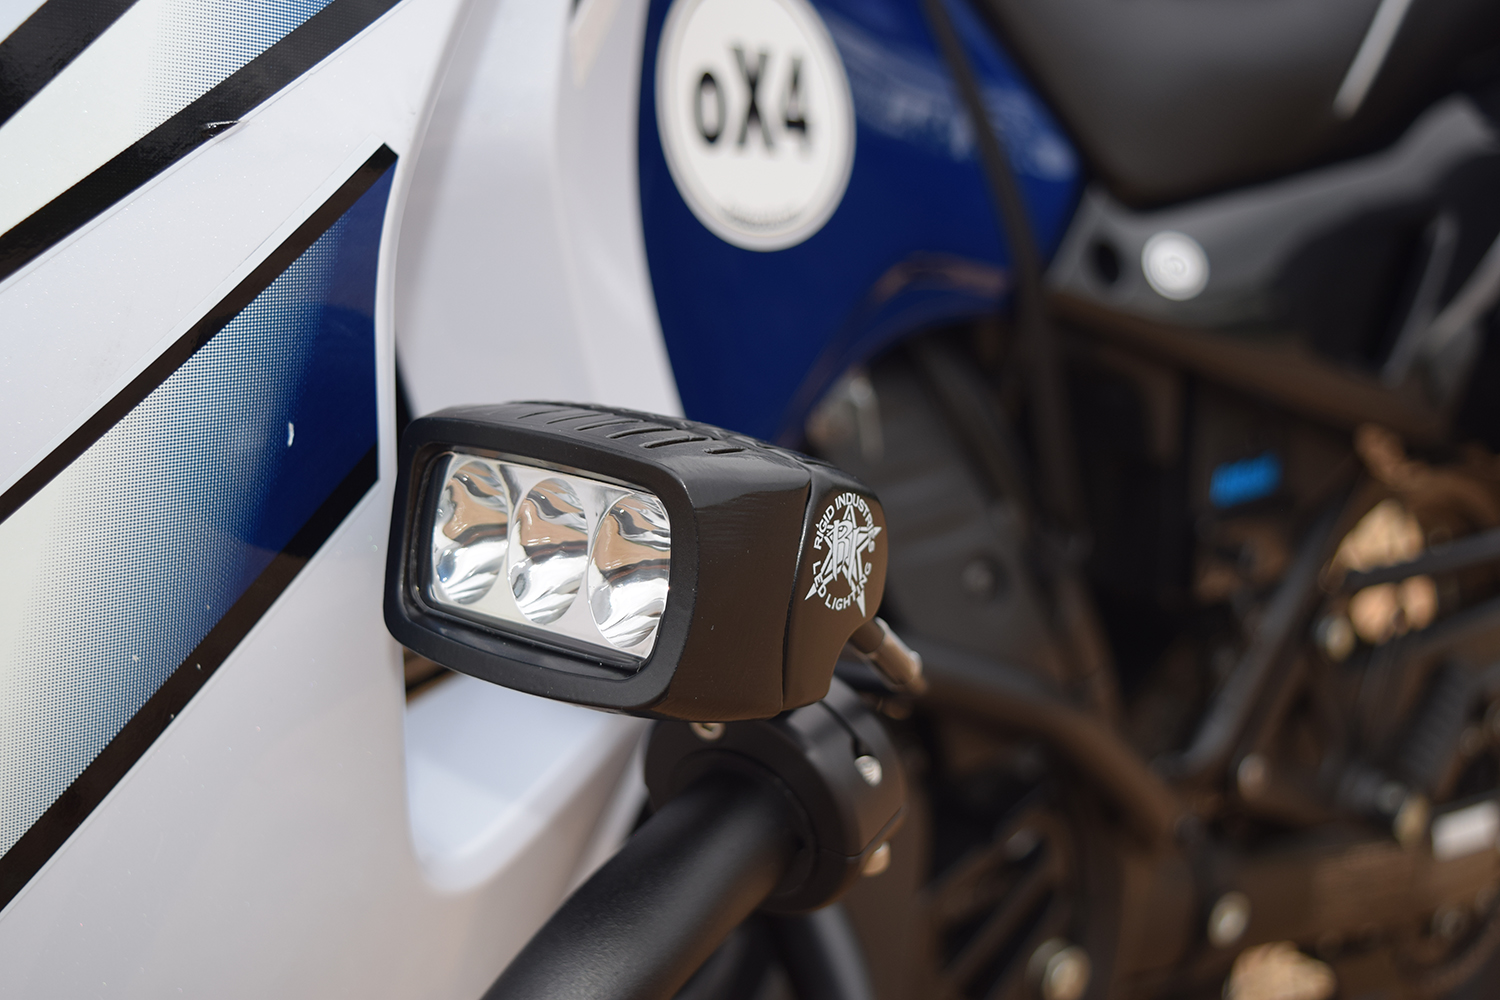 Adventure riding and the venerable klr 650 outdoorx4 i upgraded the turn signals rear brake light and dash lights with led bulbs from superbrightleds leds draw far less power leaving more in reserve for sciox Image collections